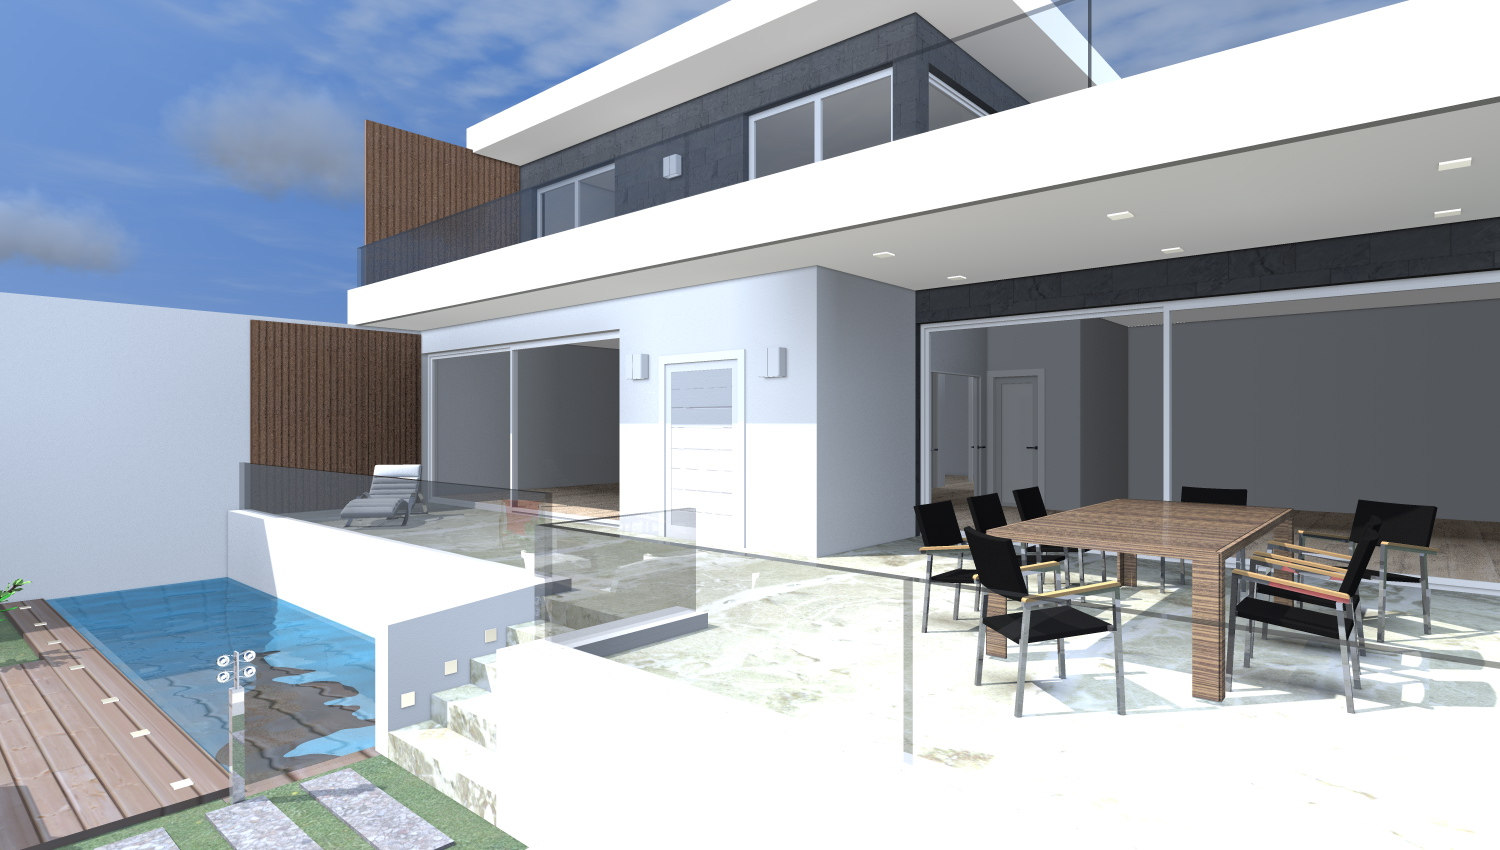 Sketch Up Villa Con Piscina